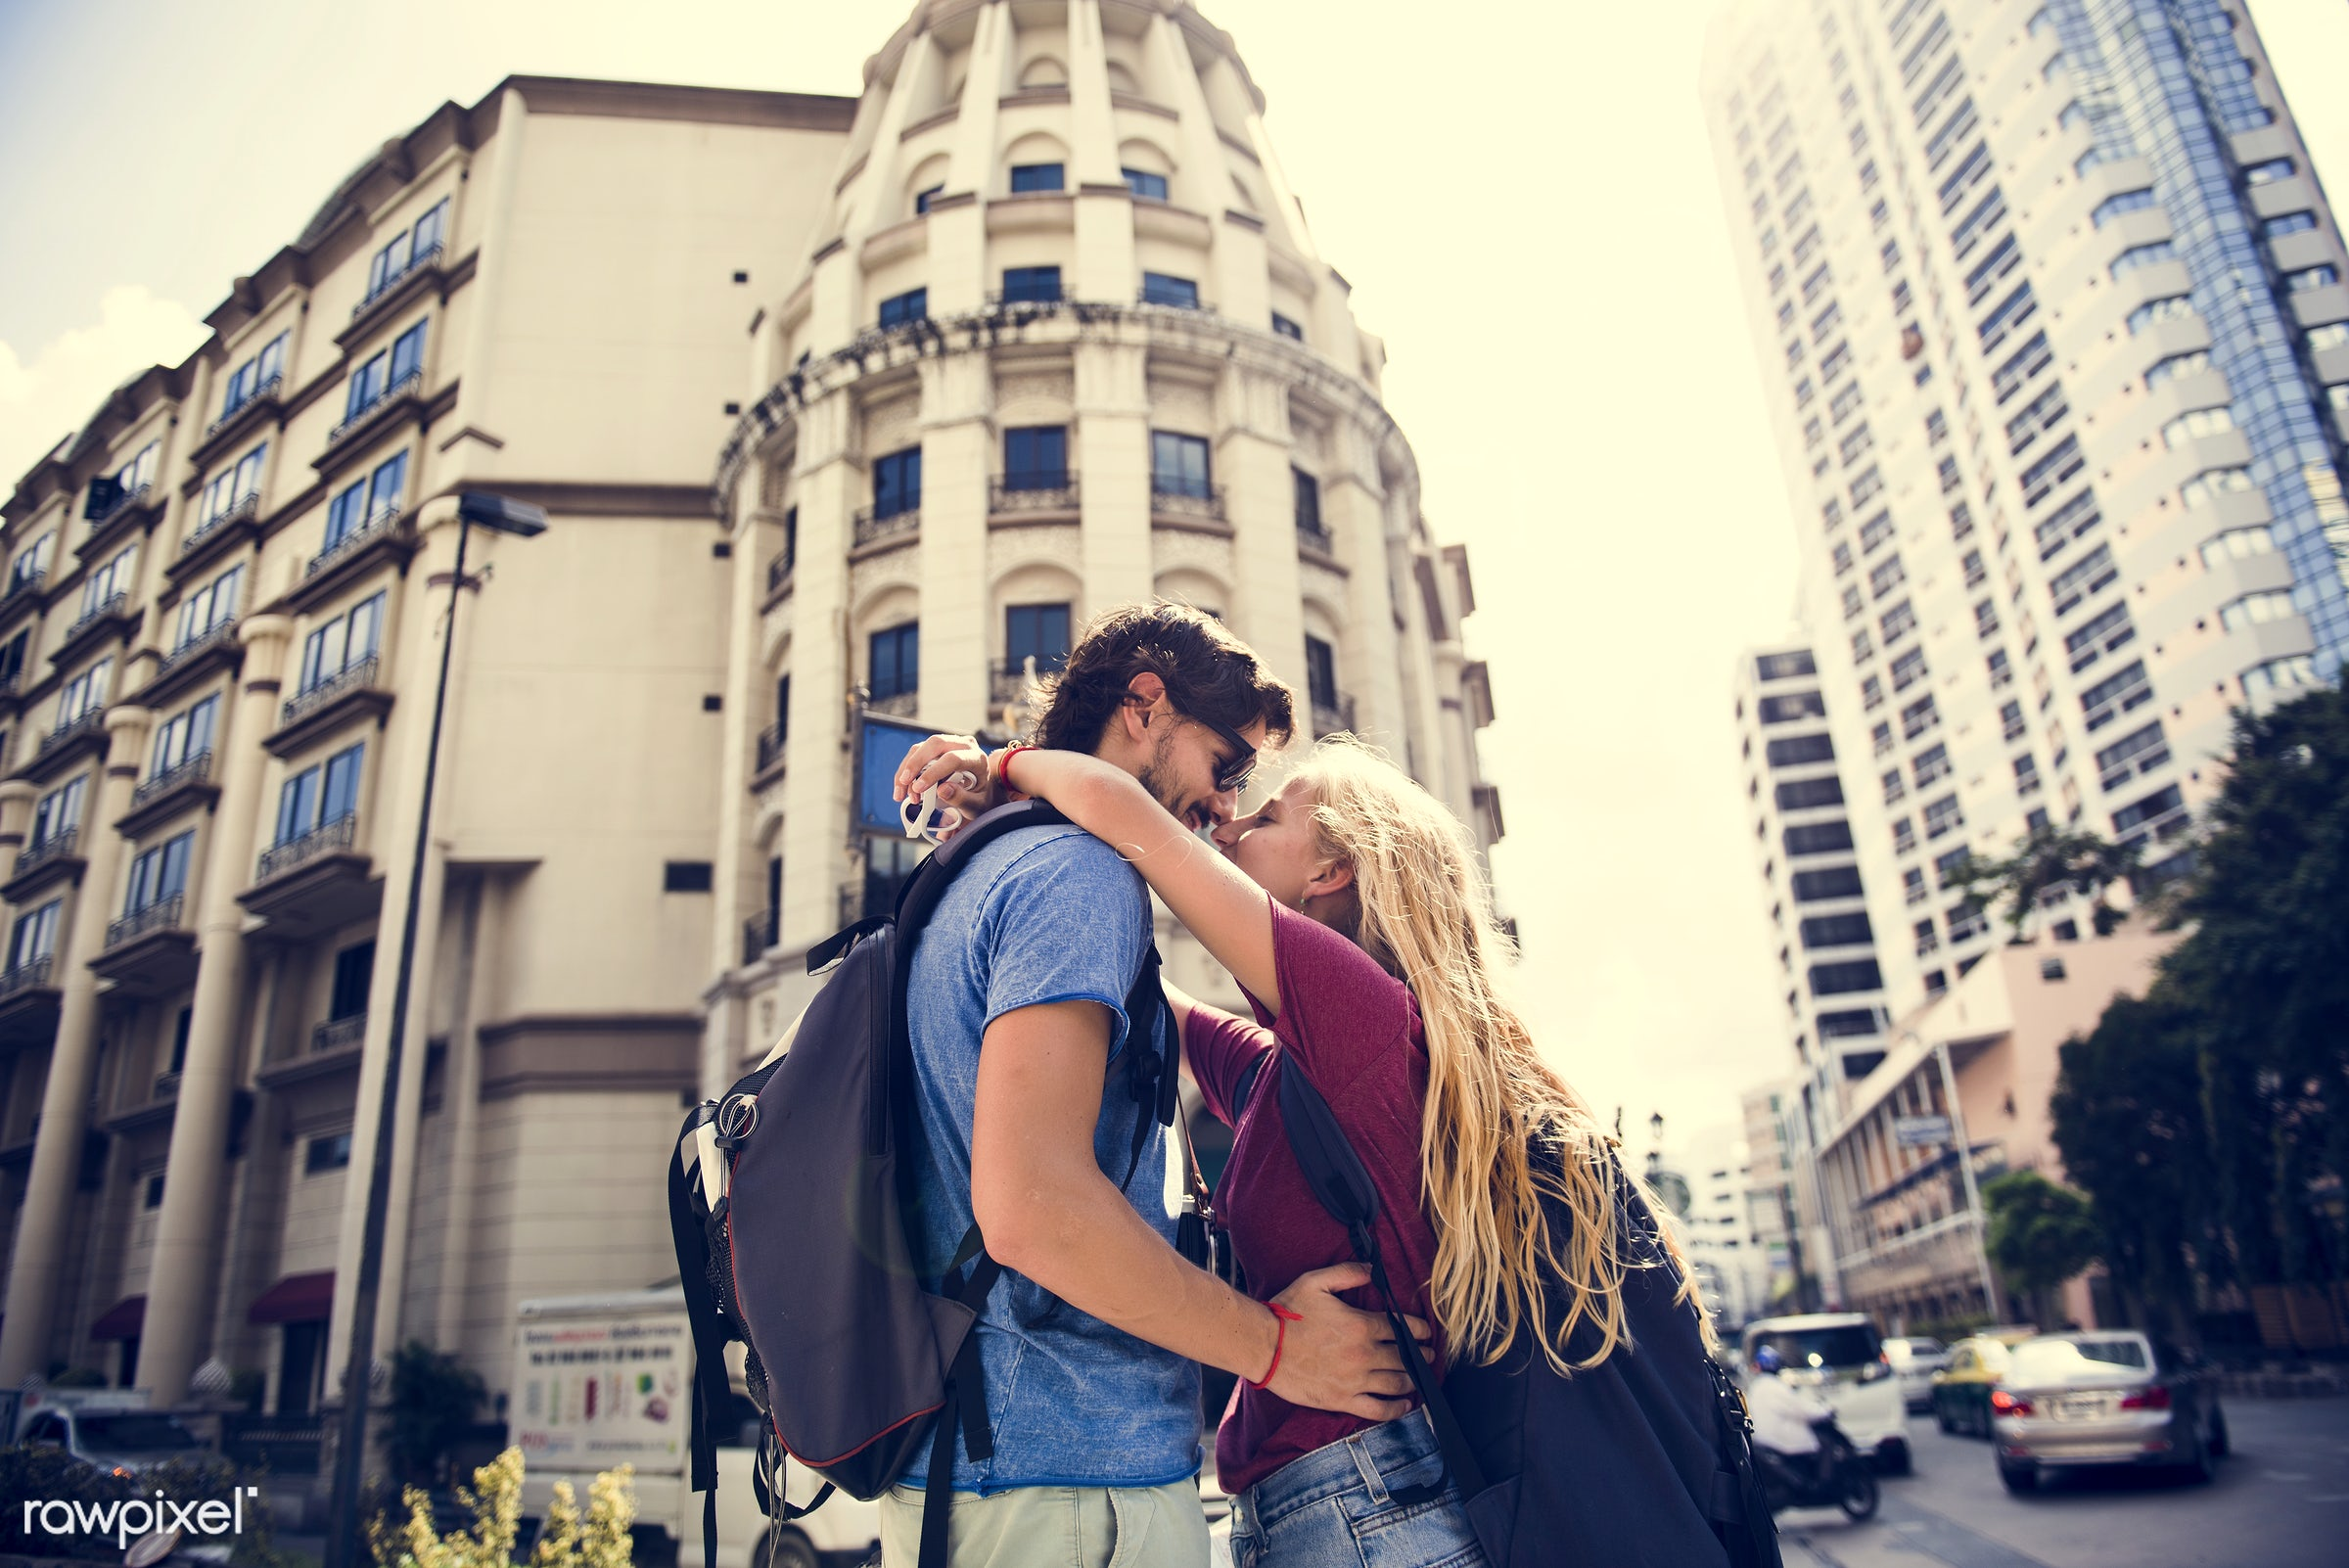 adult, affection, arms, around, beard, blonde, bonding, boyfriend, busy, casual, caucasian, cheerful, city, couple, embrace...